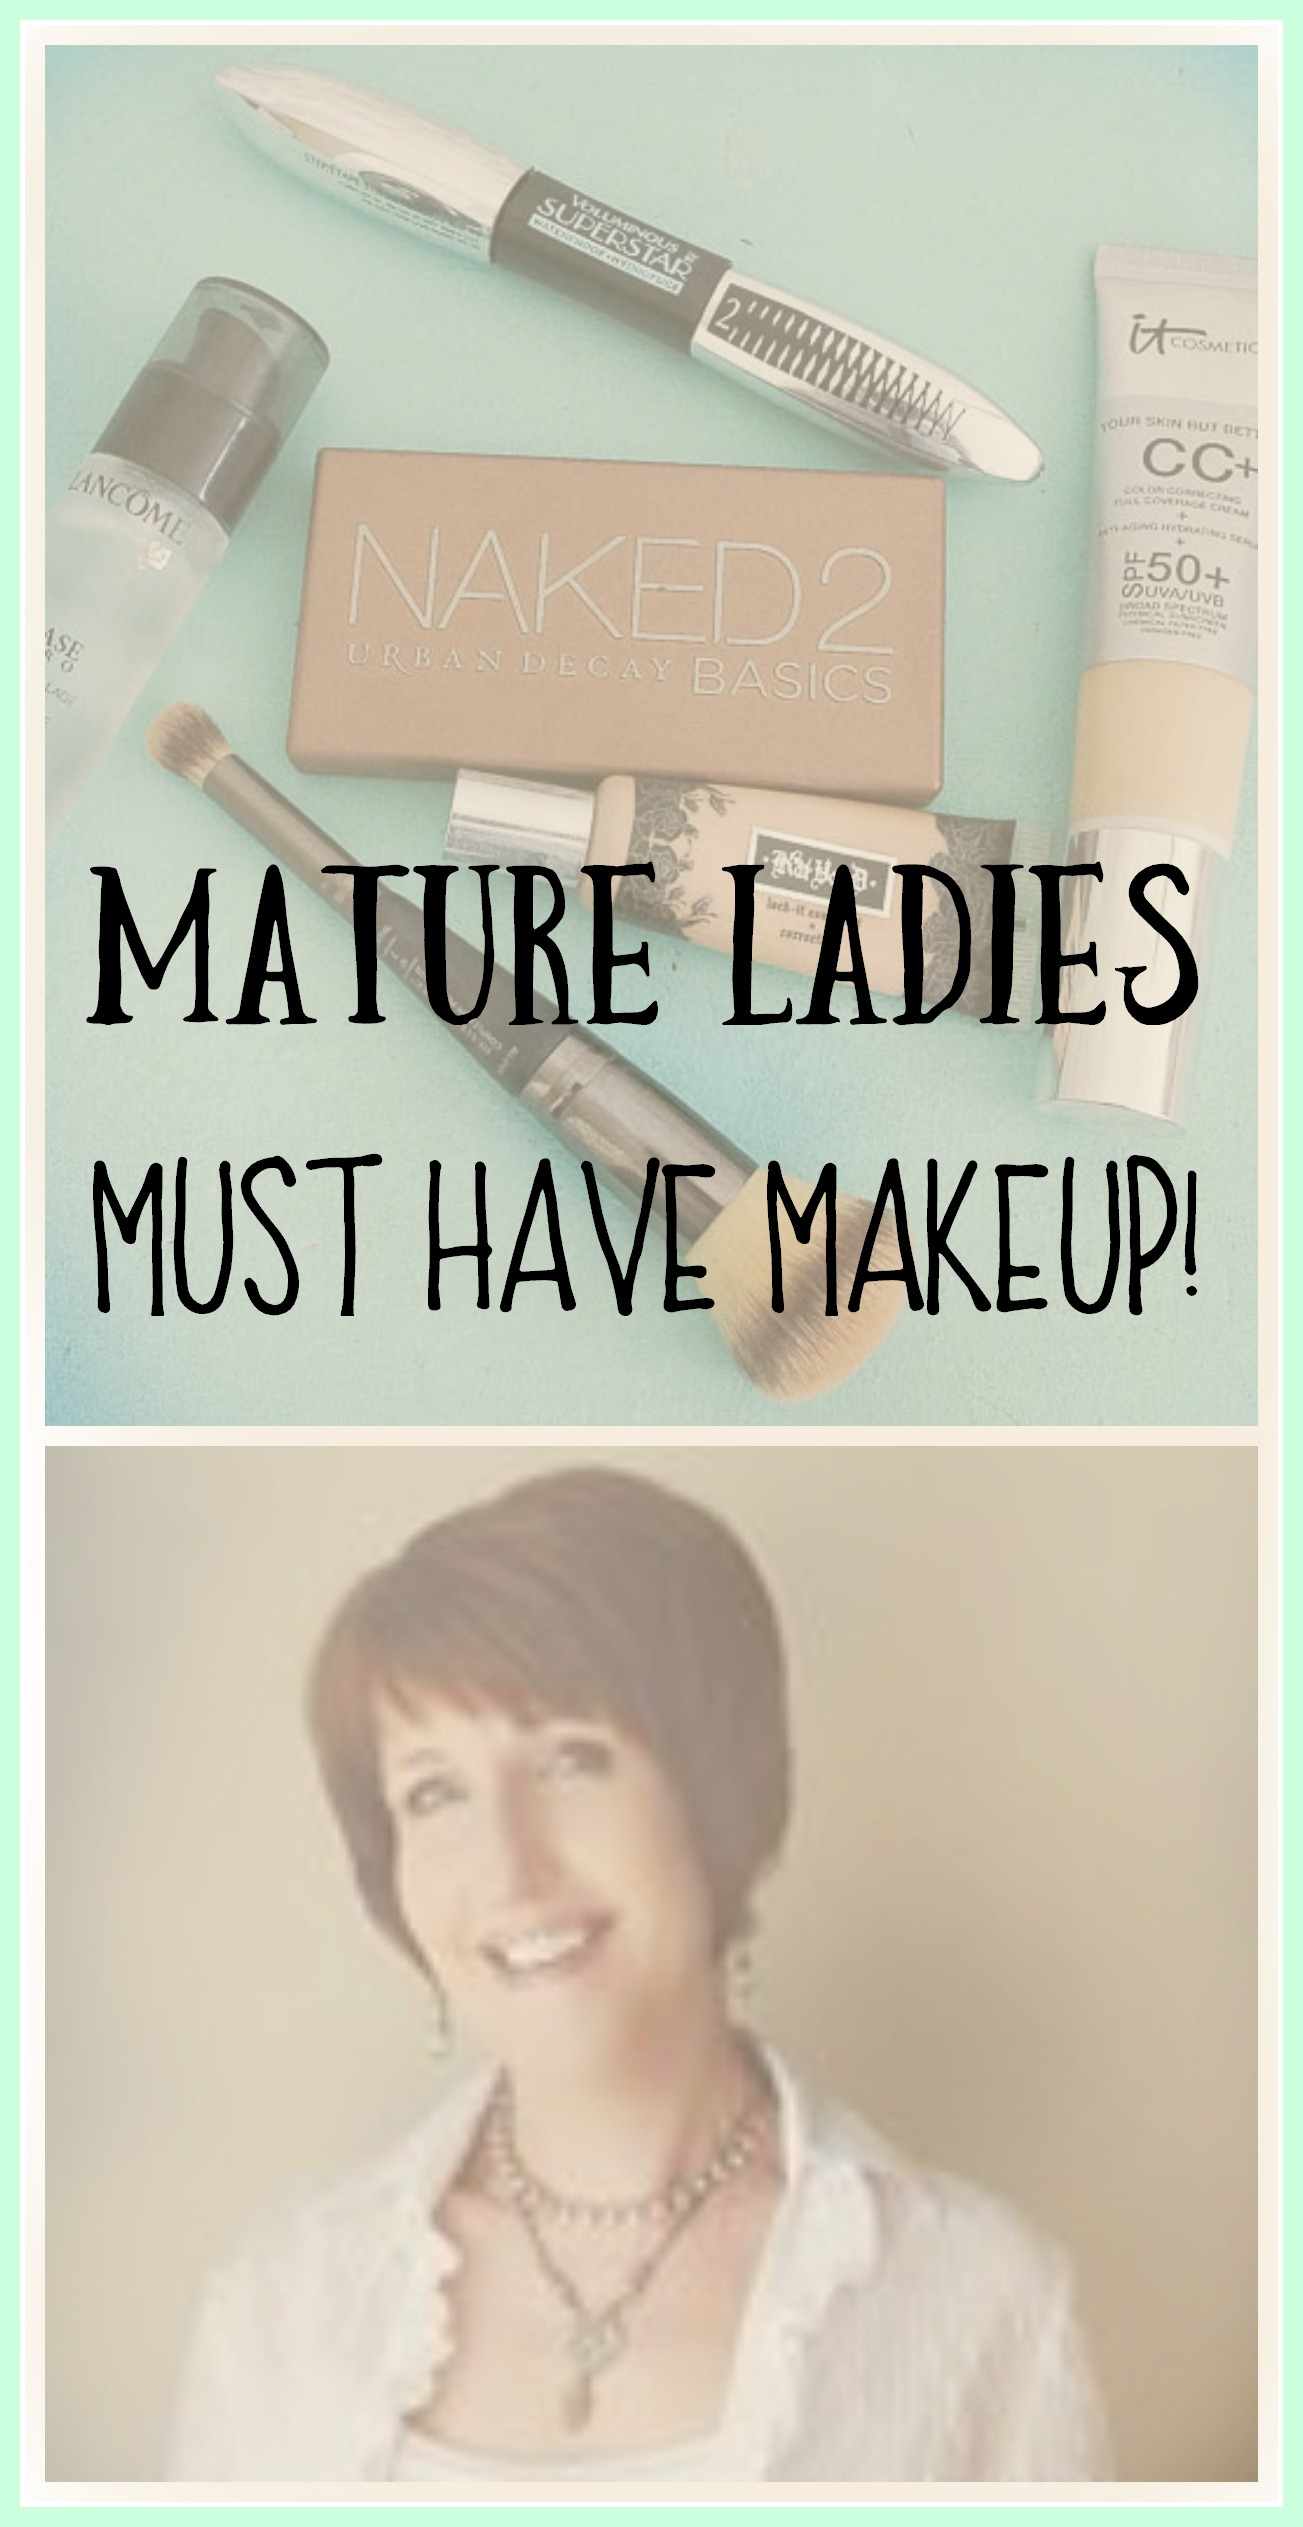 Mature ladies must have makeup!